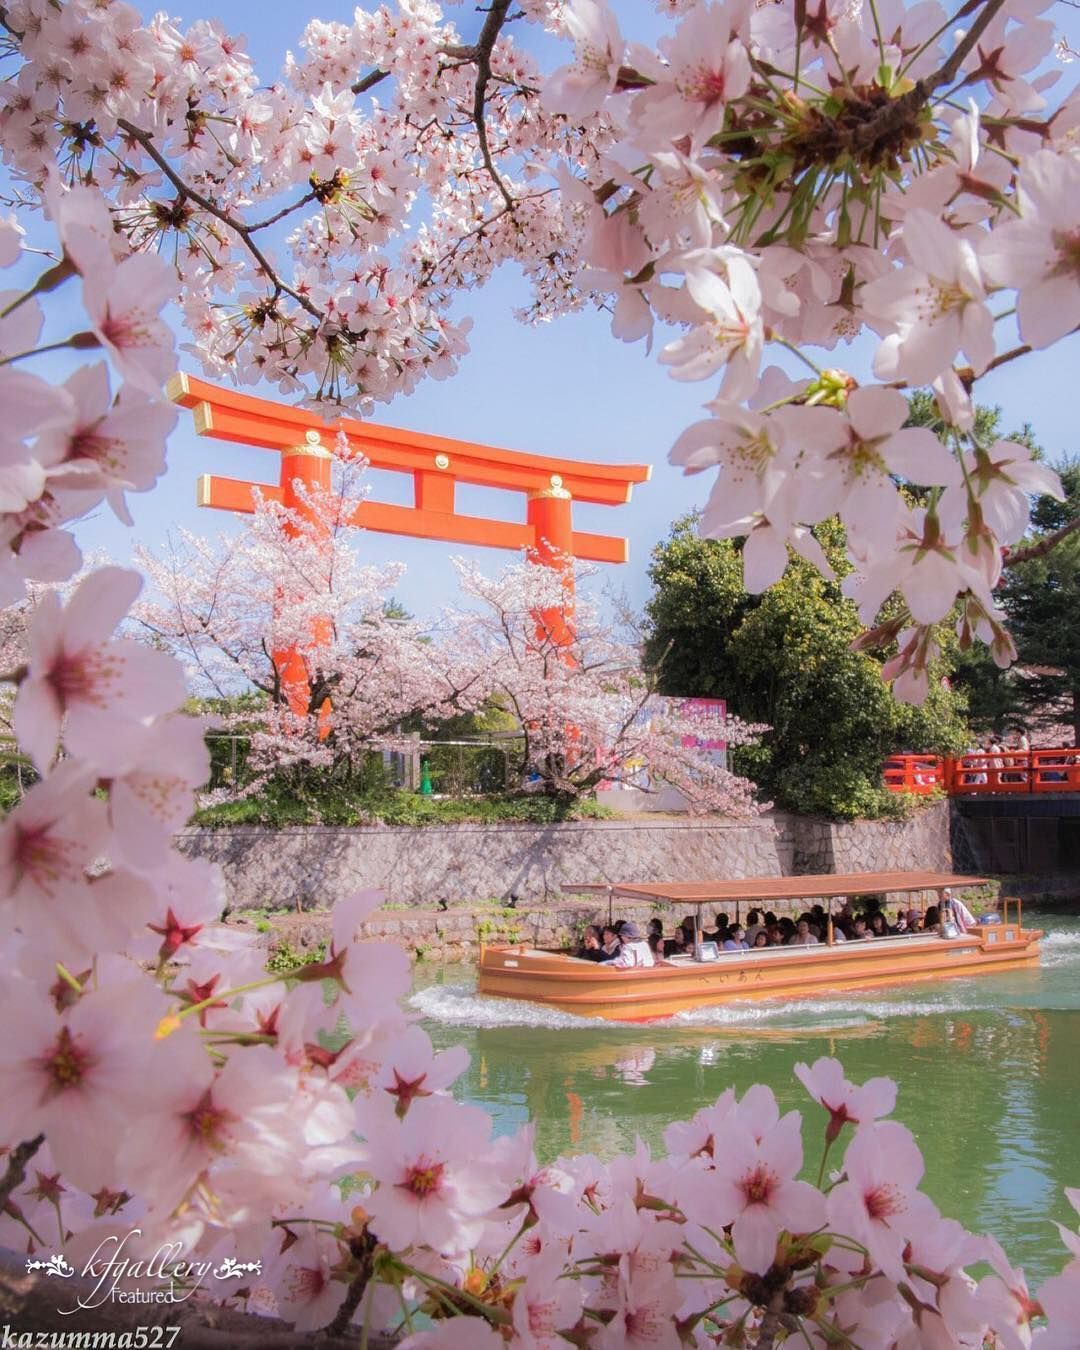 Tori I Gate Looking Over The Cherry Blossom In Japan Cherry Blossom Japan Japan Sakura Japan Photography